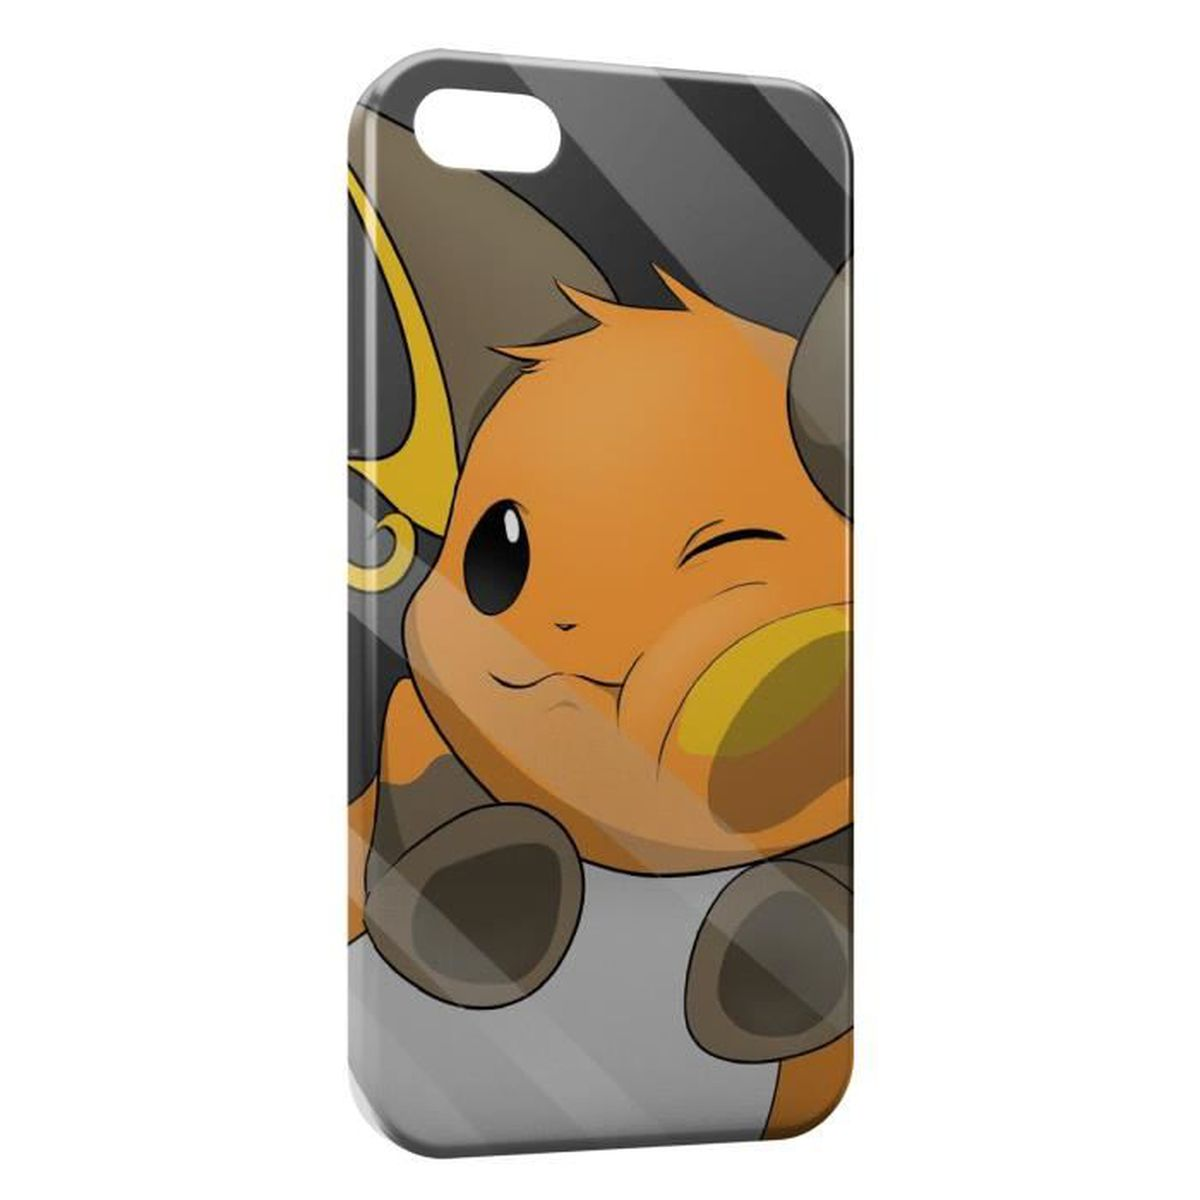 iphone 7 coque glace